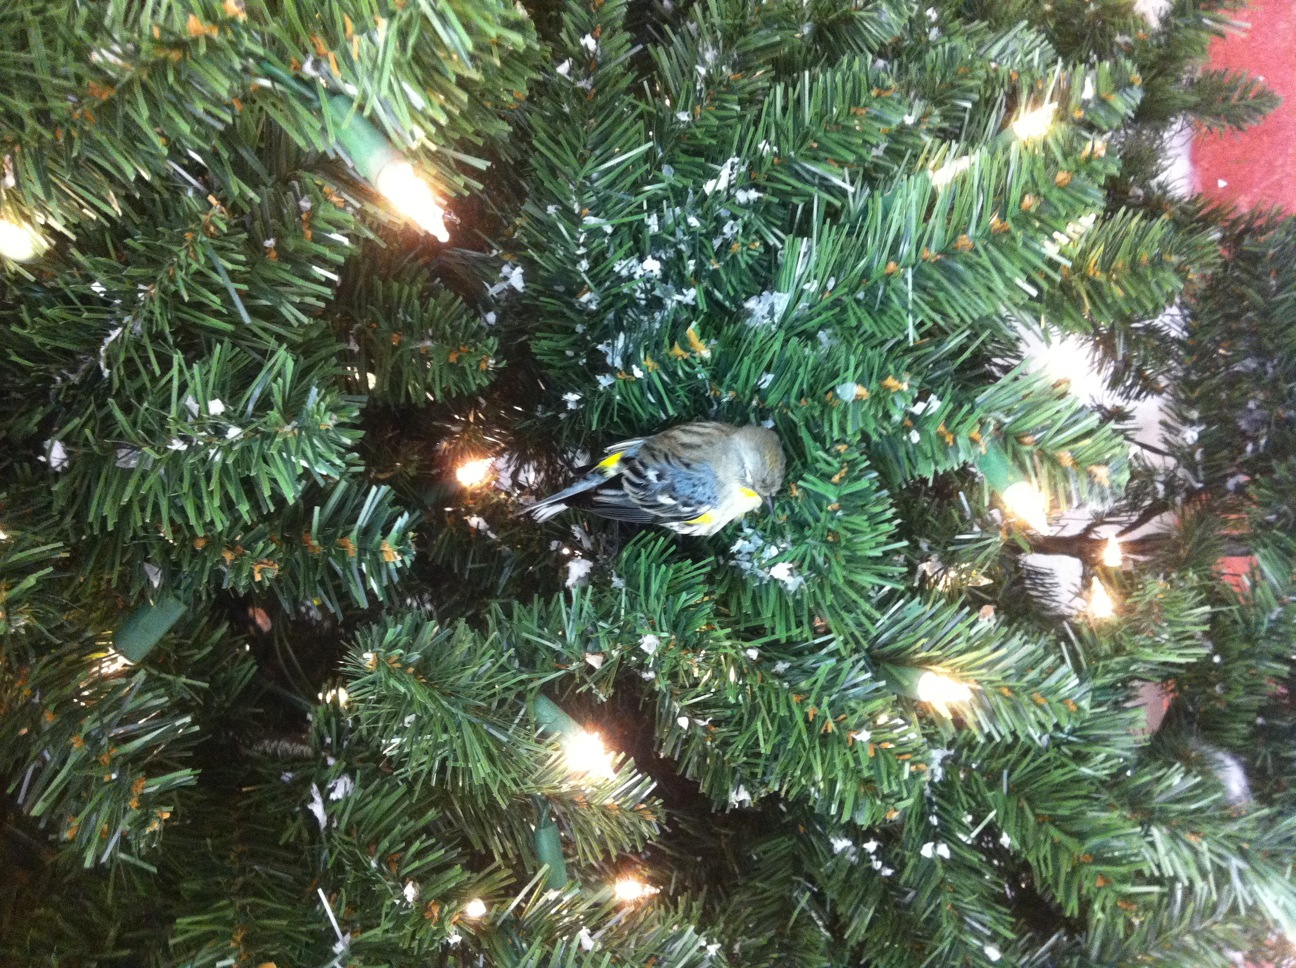 DeadBirdInChristmasTree